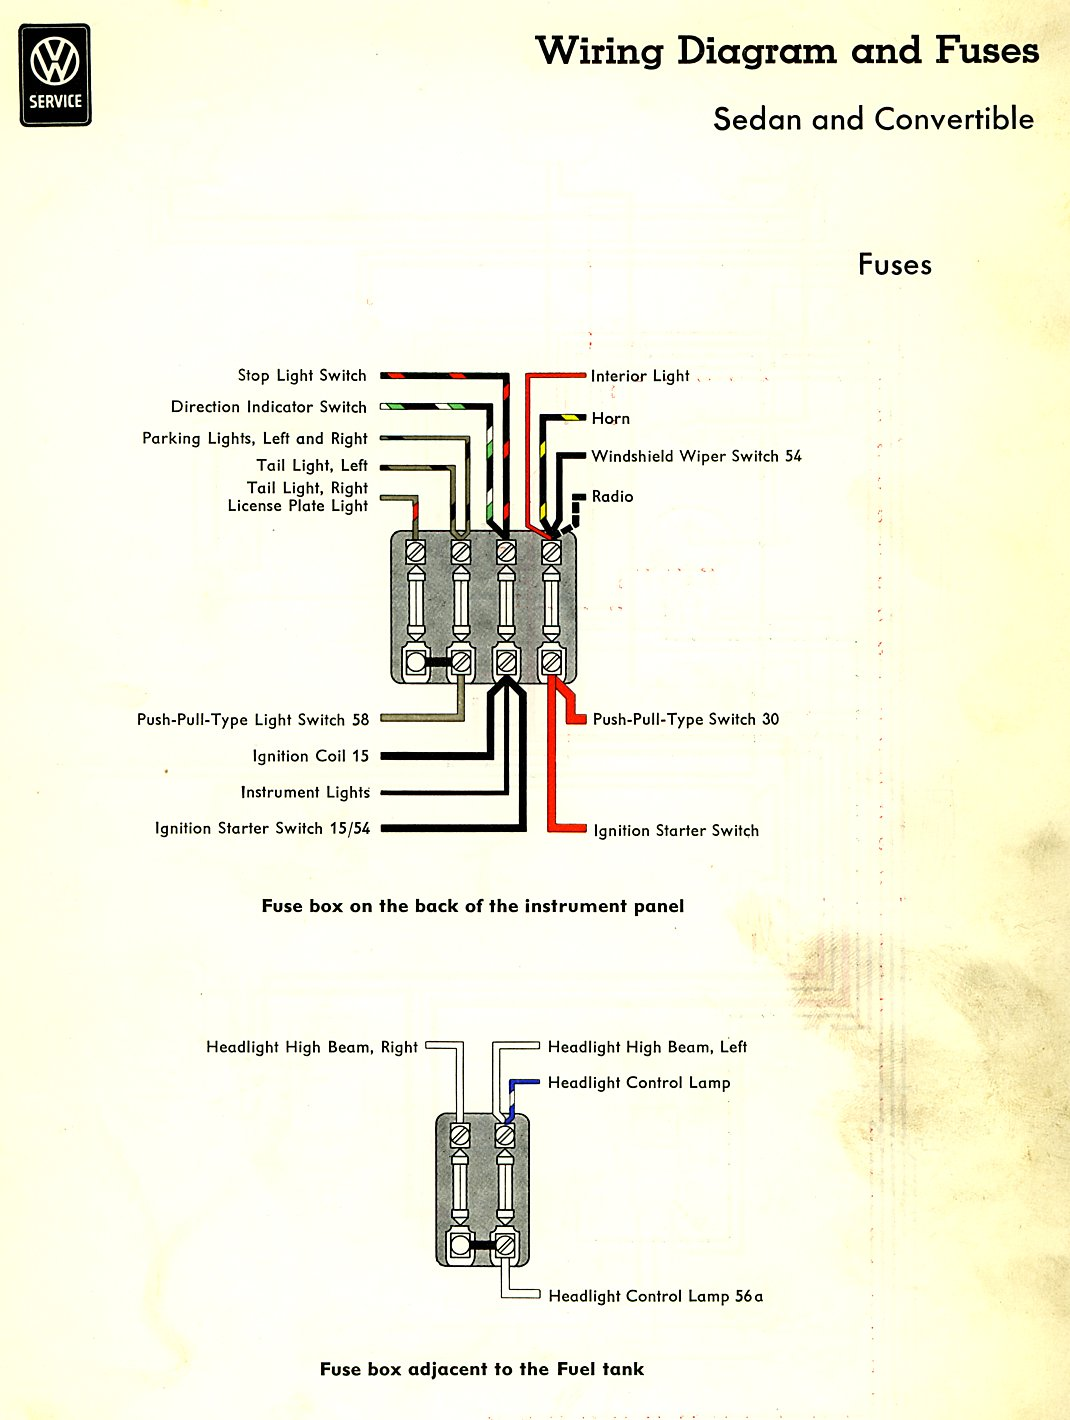 Bug Fuses on 1971 vw super beetle wiring diagram